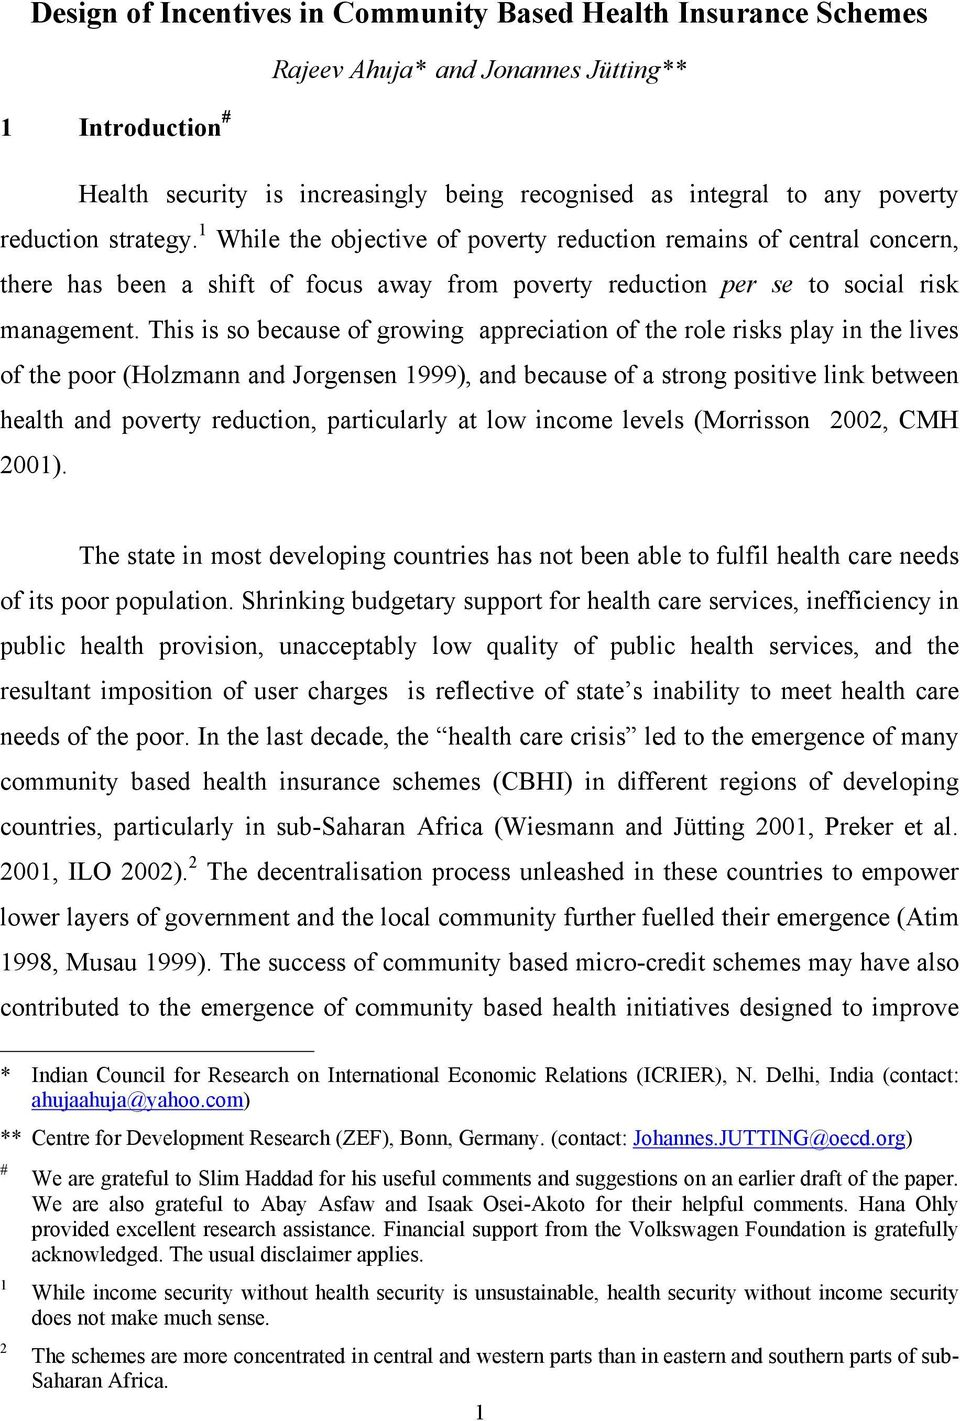 This is so because of growing appreciation of the role risks play in the lives of the poor (Holzmann and Jorgensen 1999), and because of a strong positive link between health and poverty reduction,